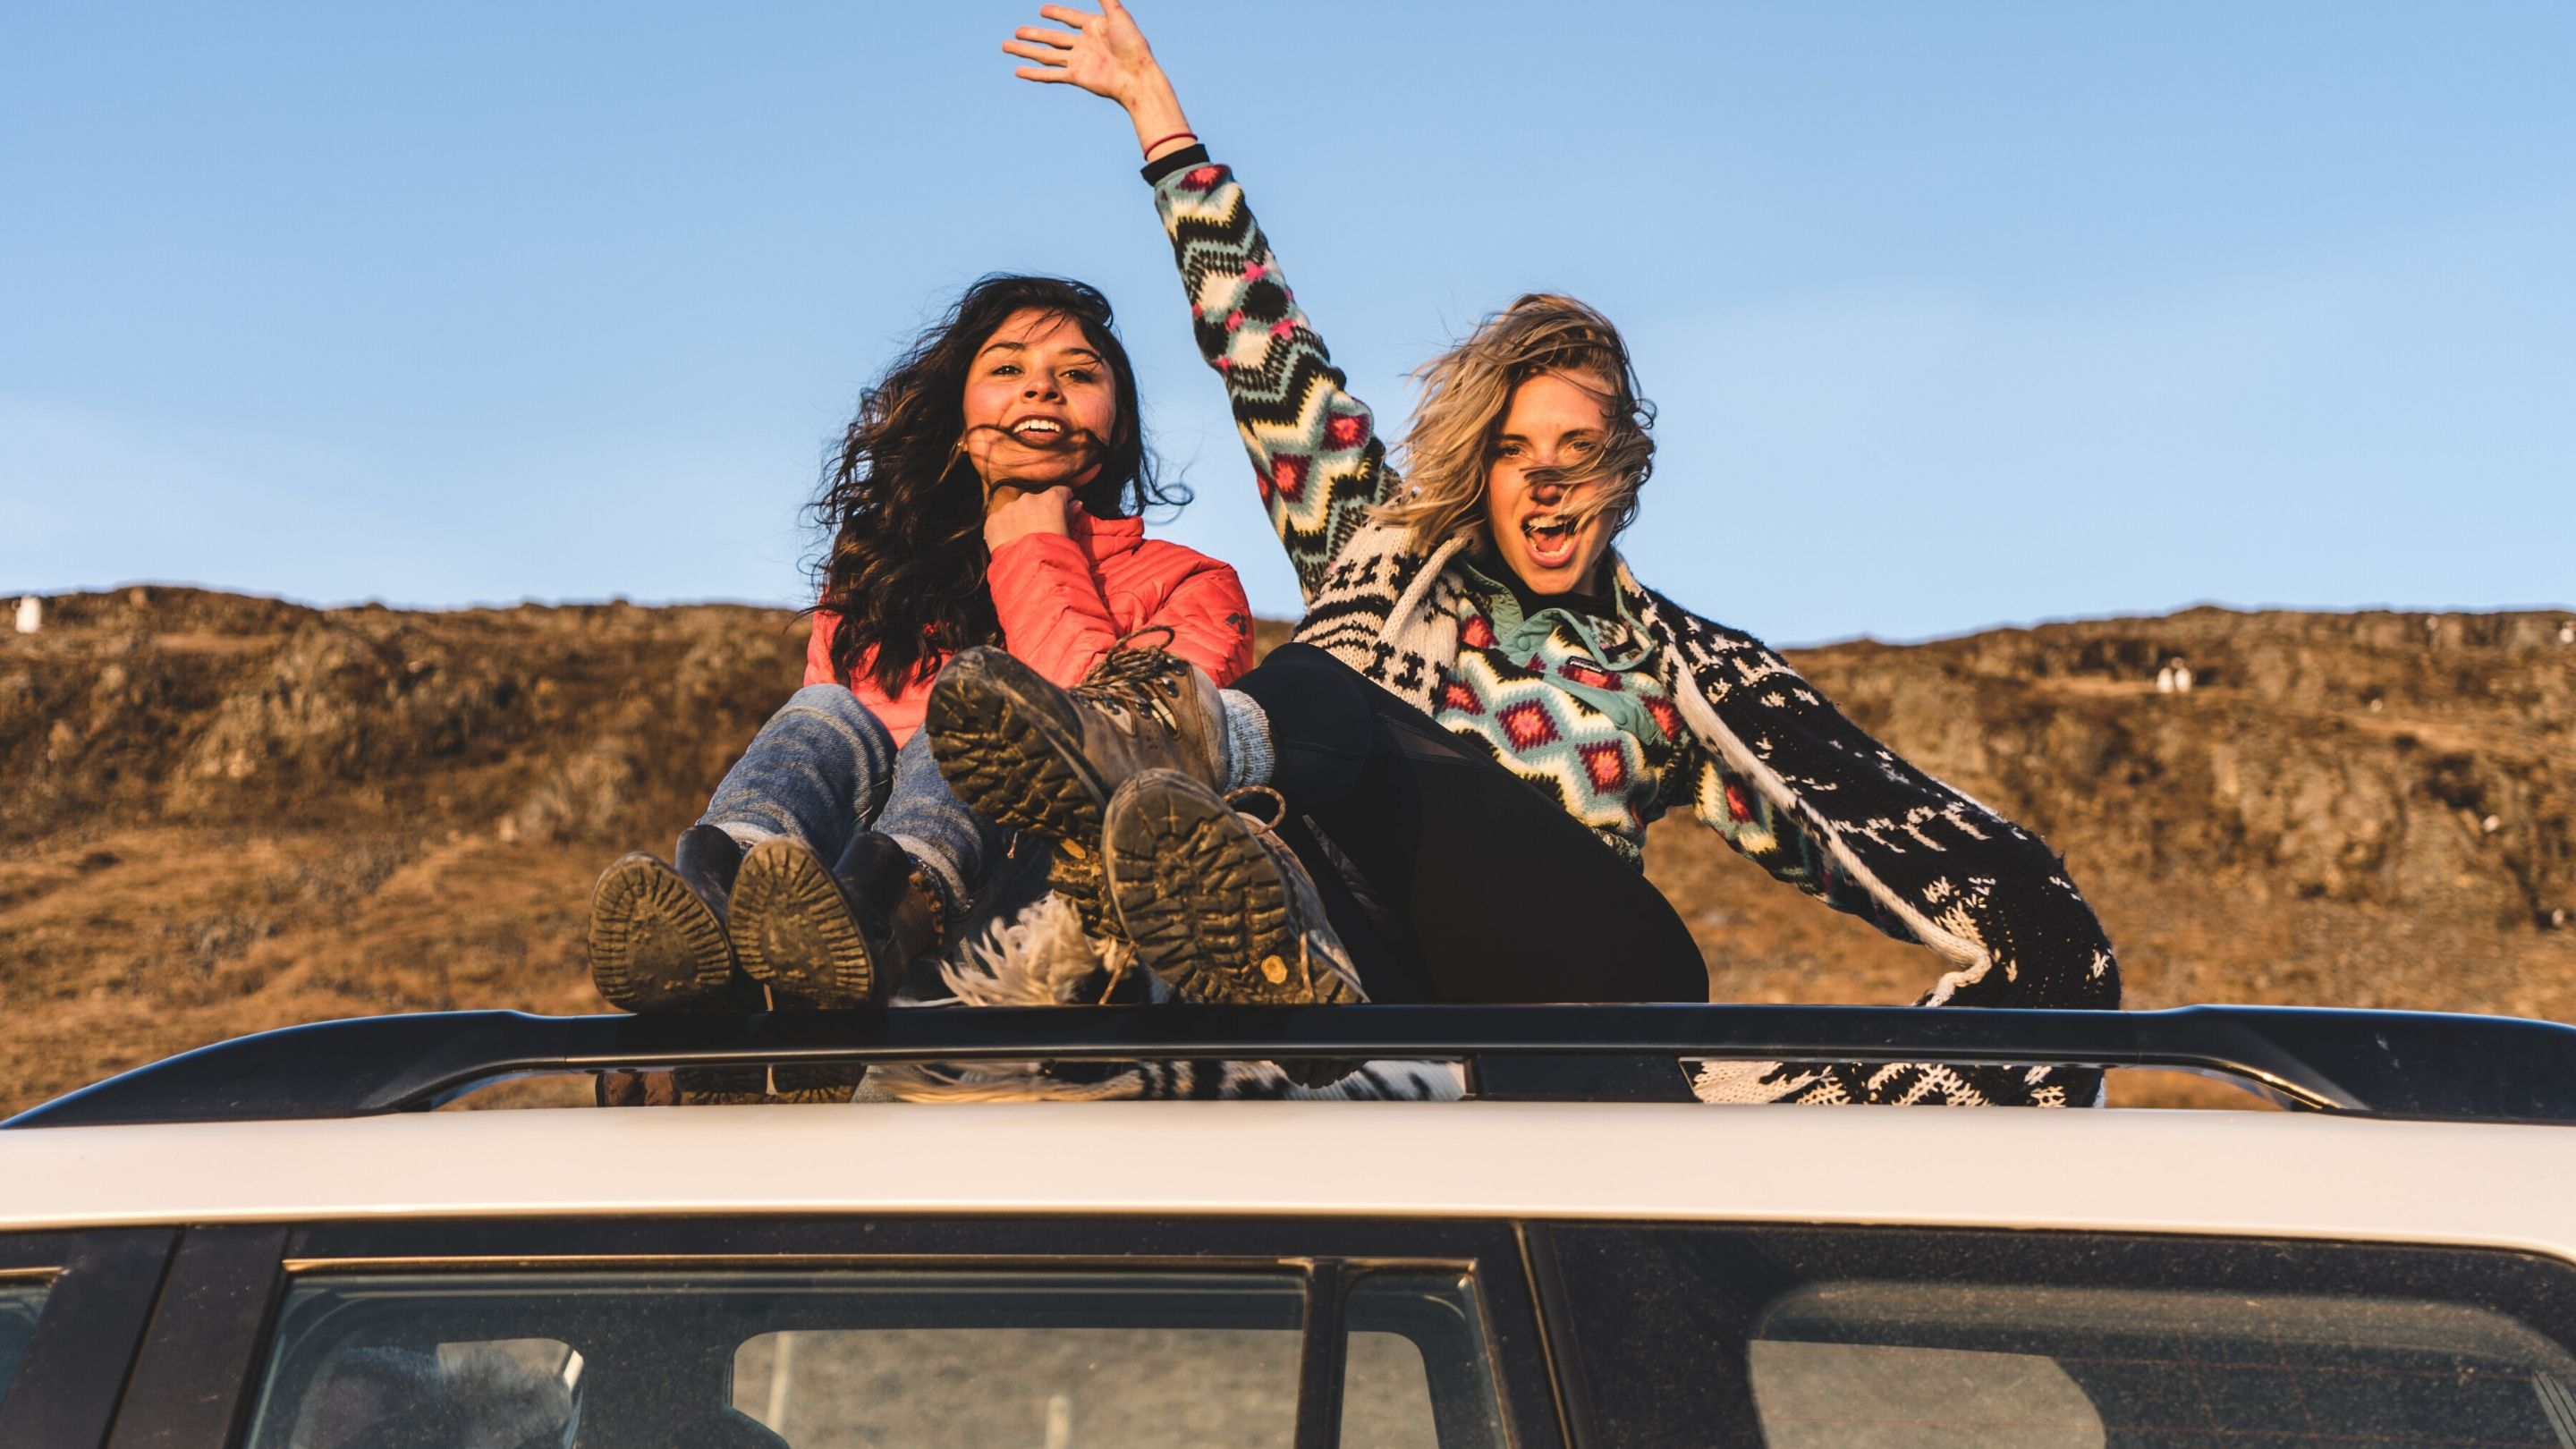 Two women on a road trip